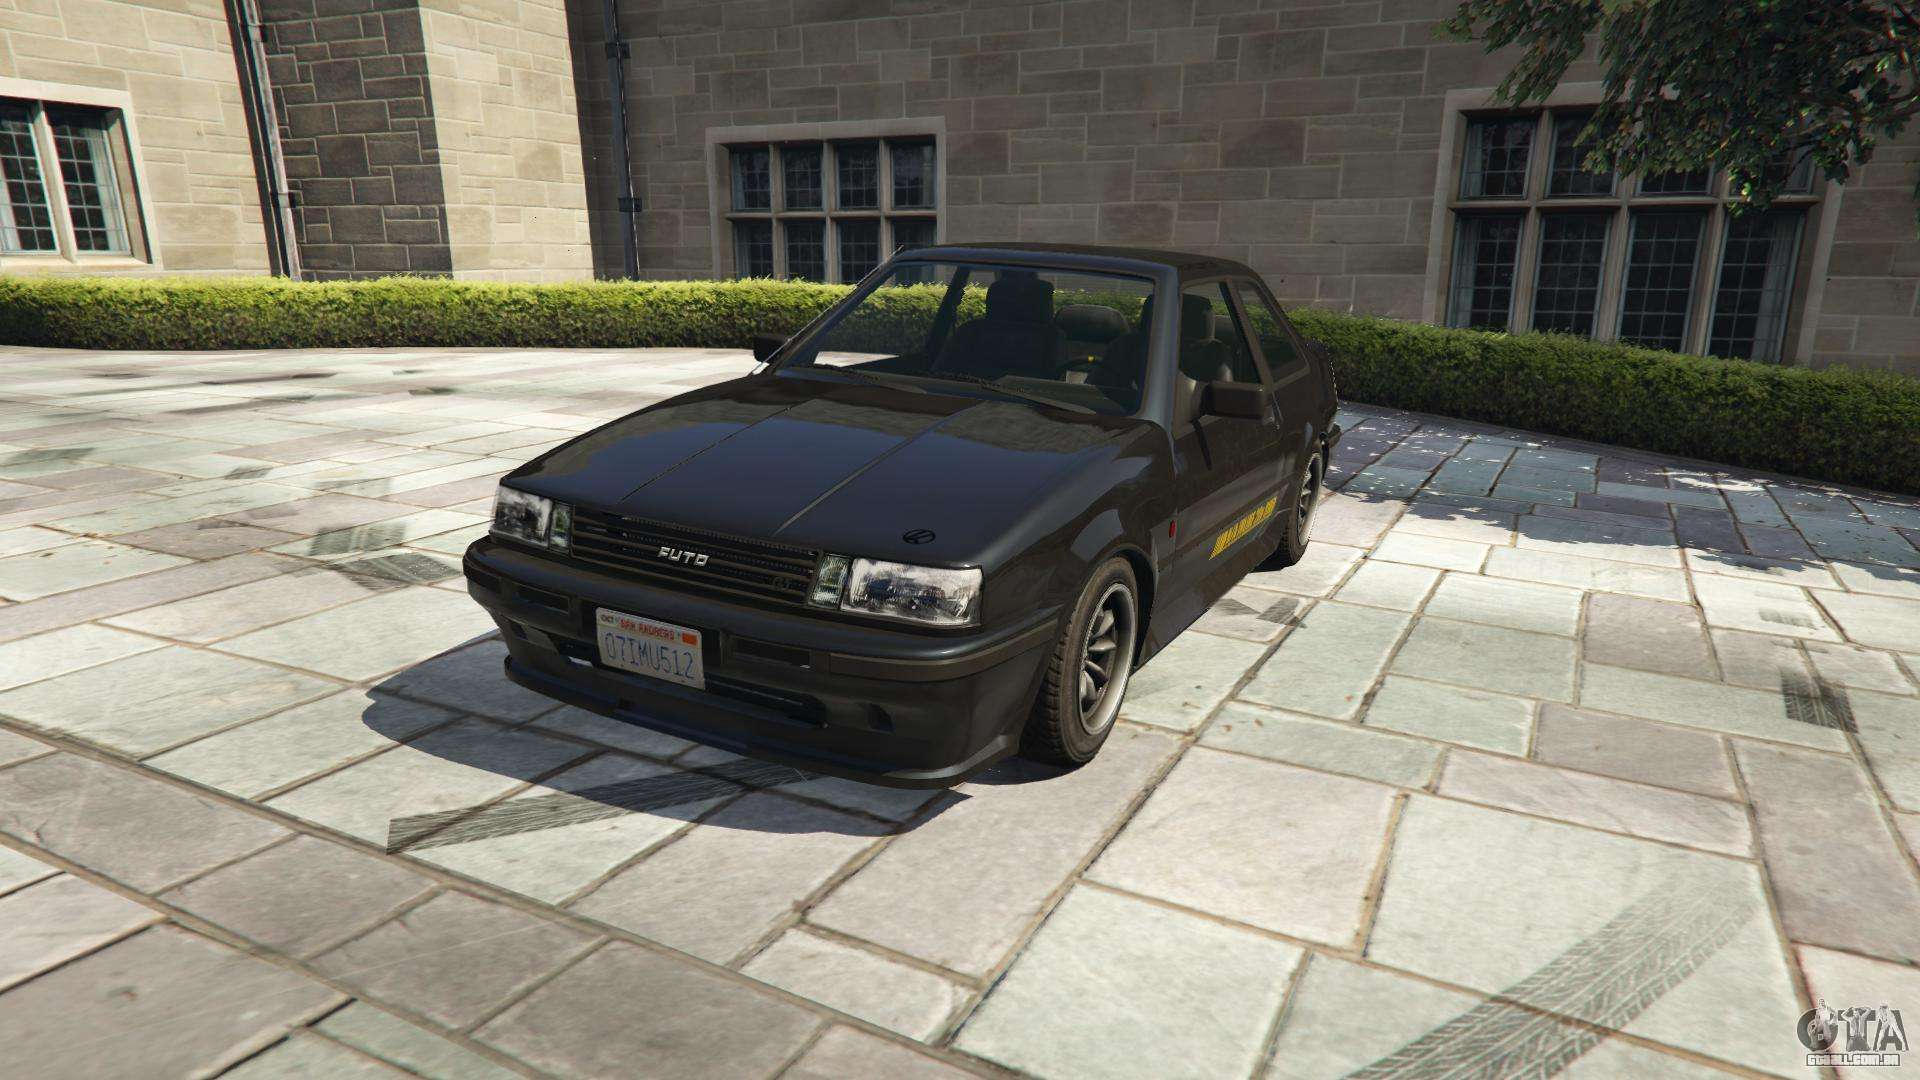 Karin Futo do GTA 5 - vista frontal